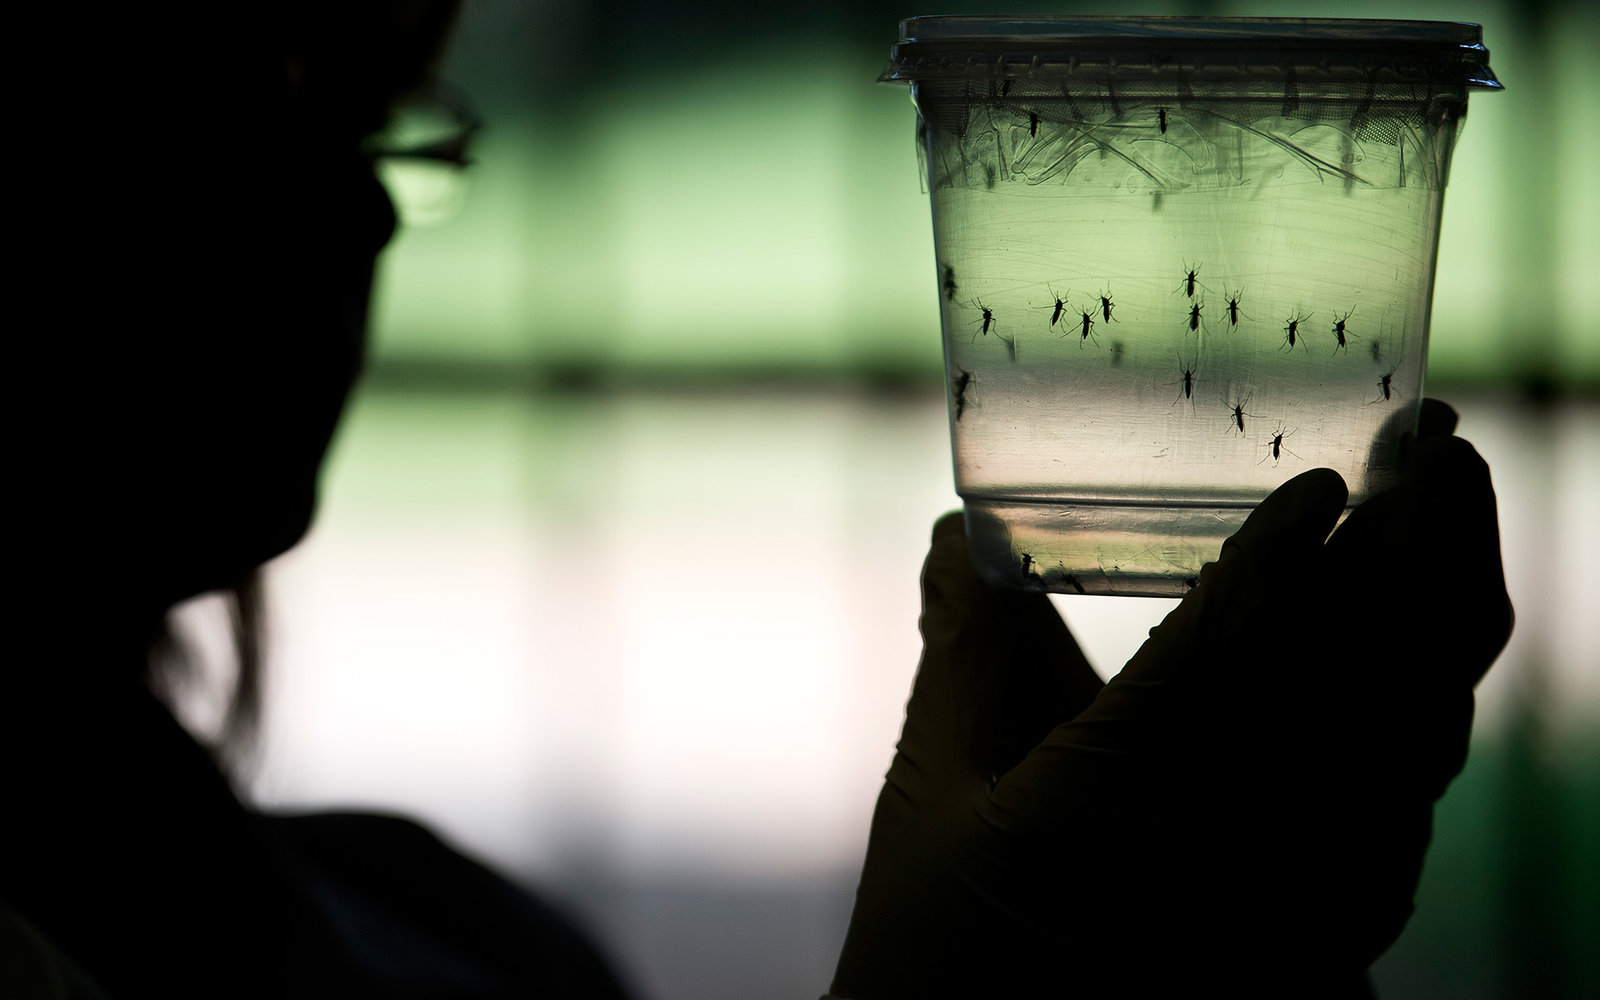 What You Need to Know About Zika Virus Before Your Next Trip